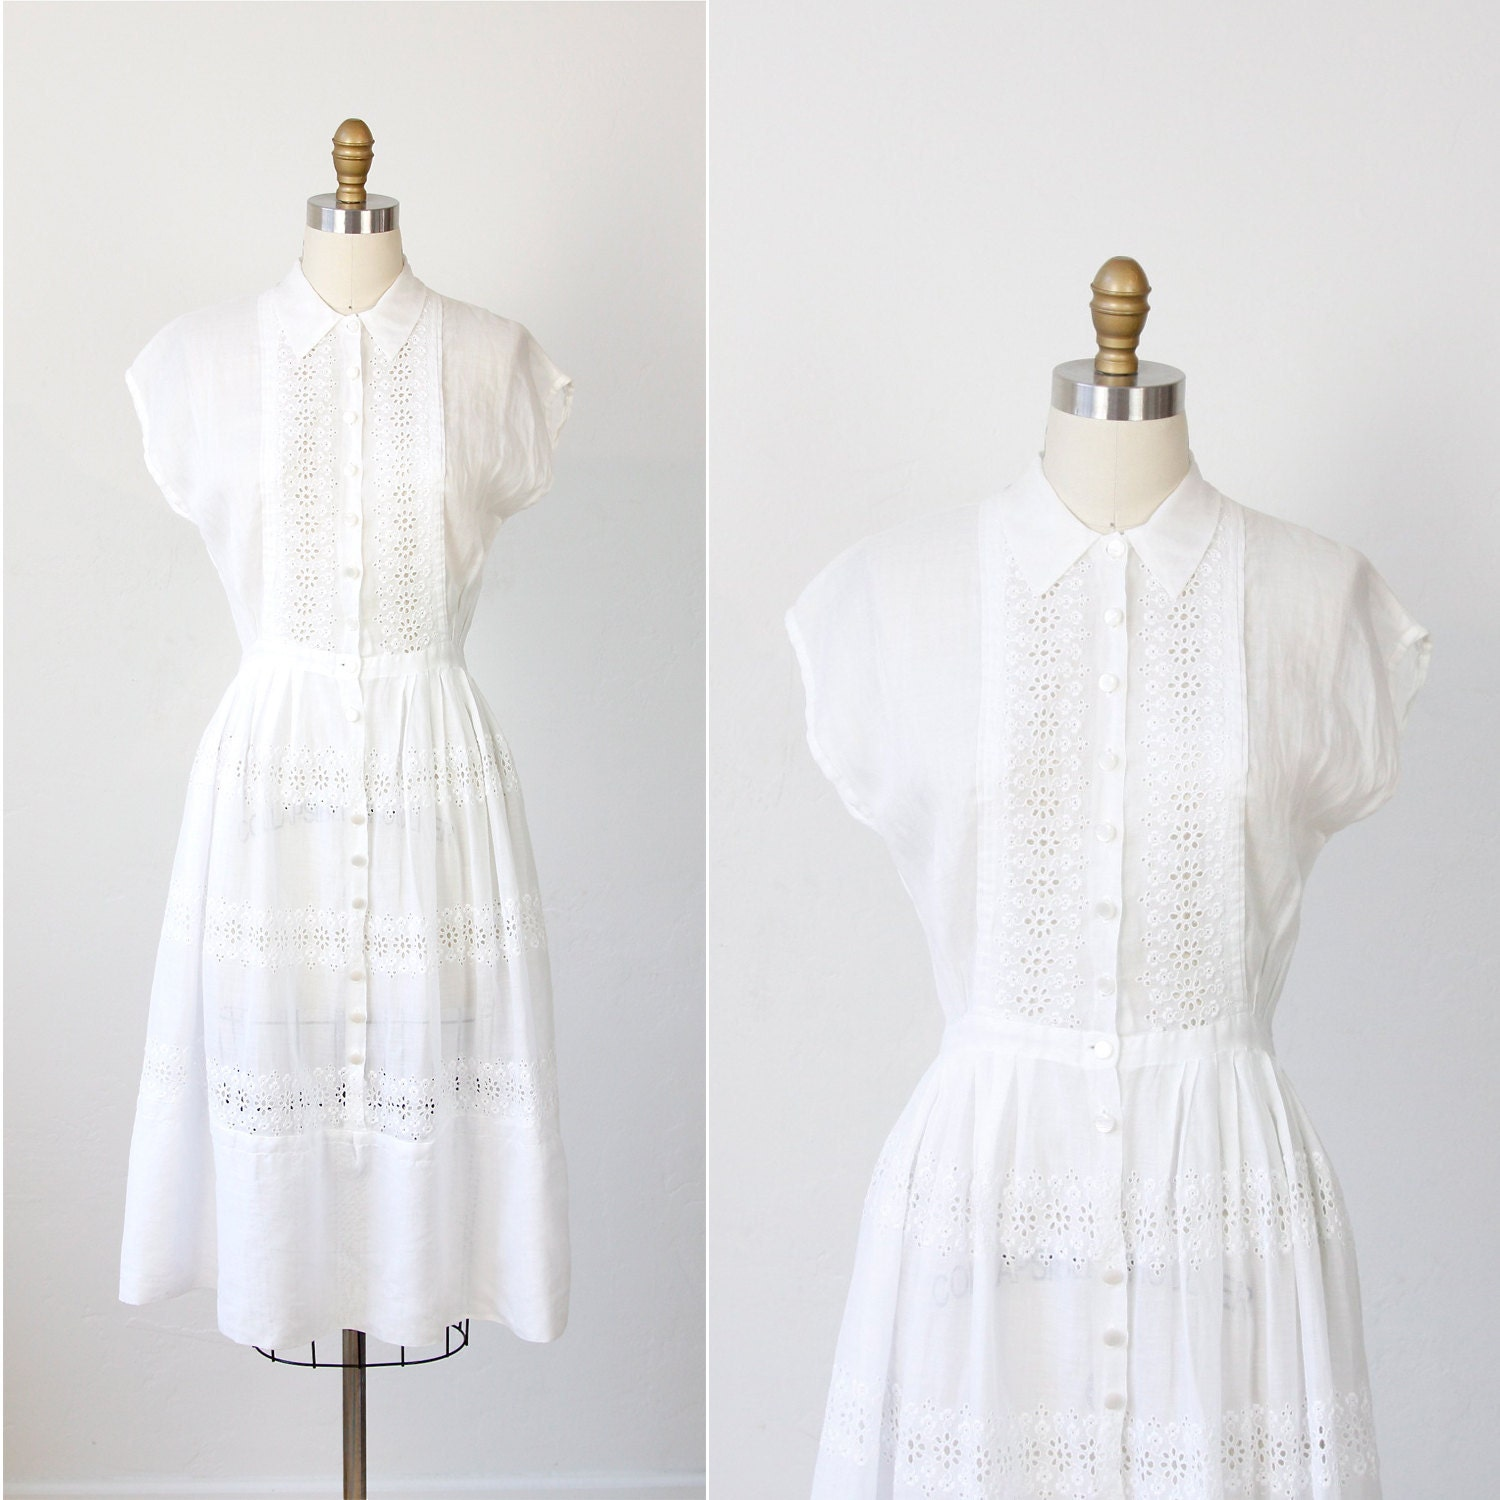 White Eyelet Dress Sheer Cotton Voile 1950s by salvagelife